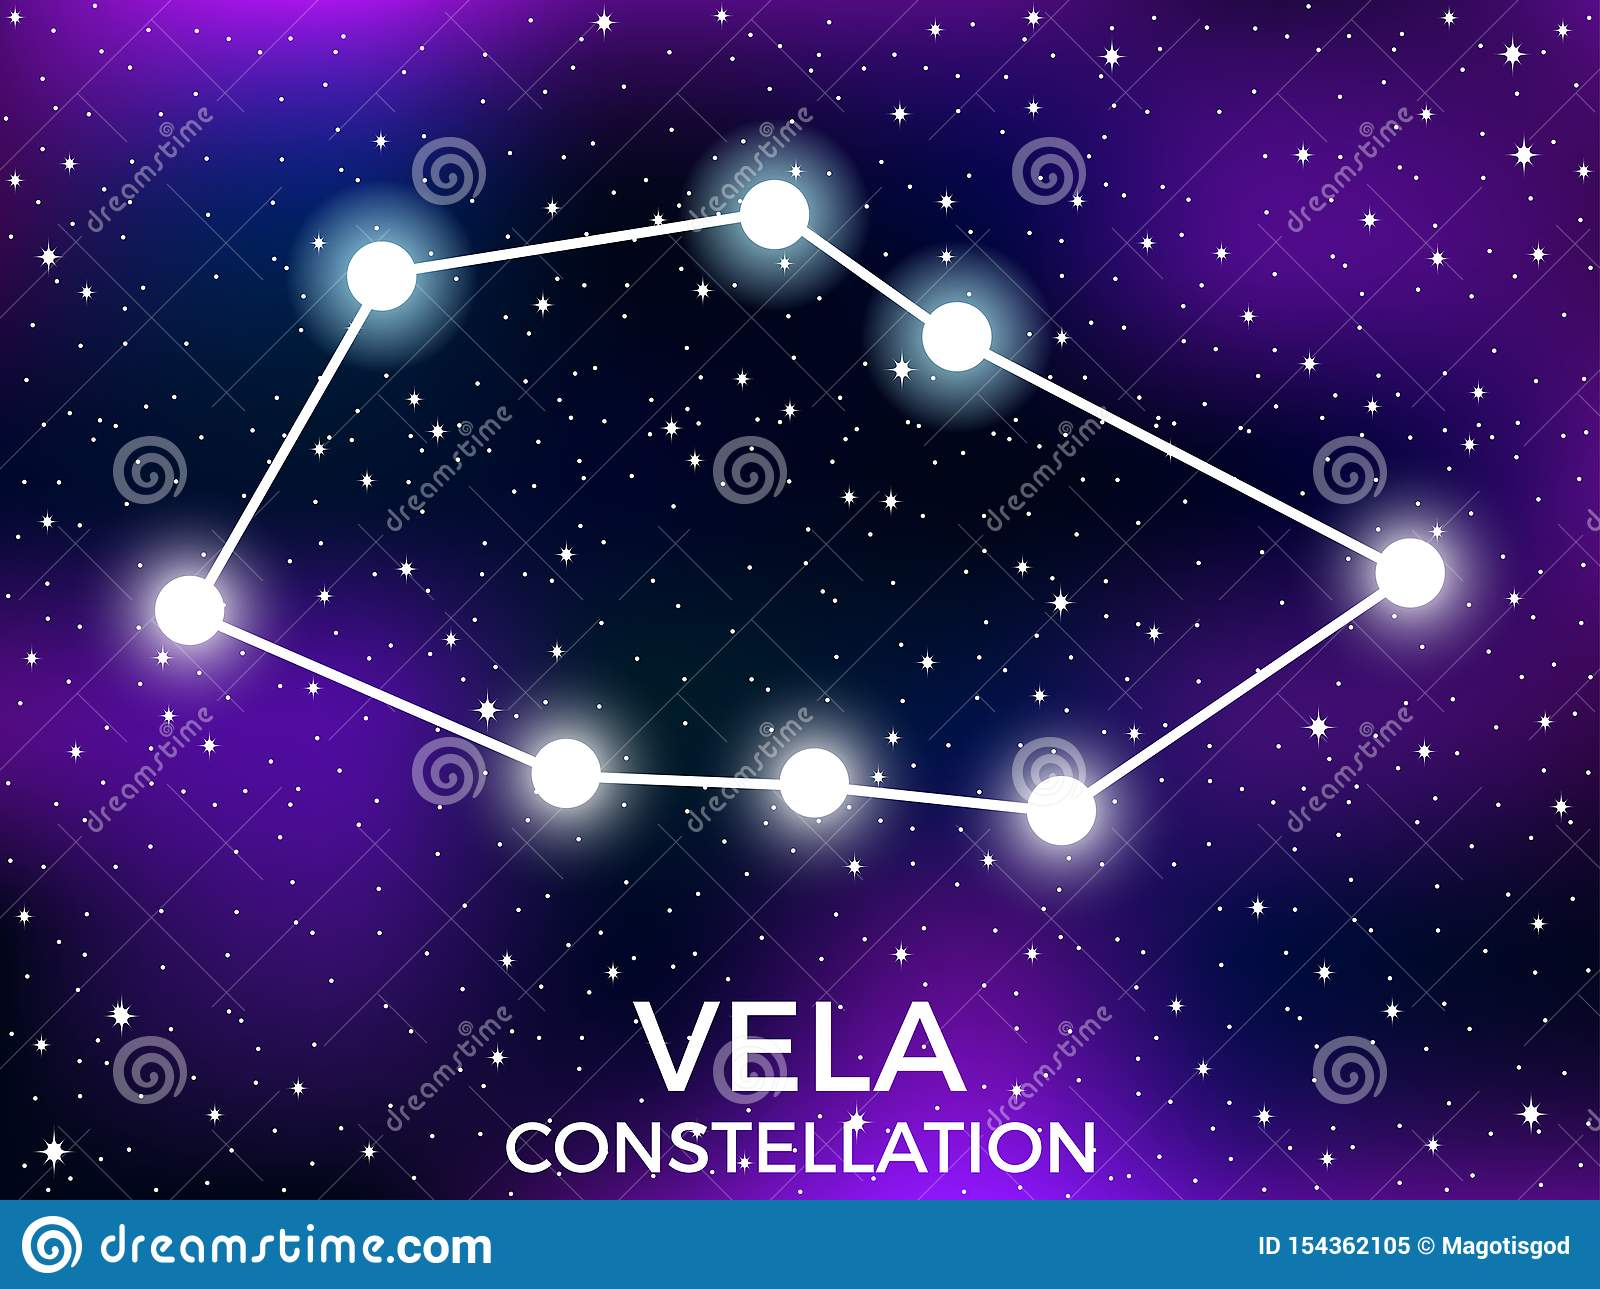 Vela constellation. Starry night sky. Cluster of stars and galaxies. Deep space. Vector